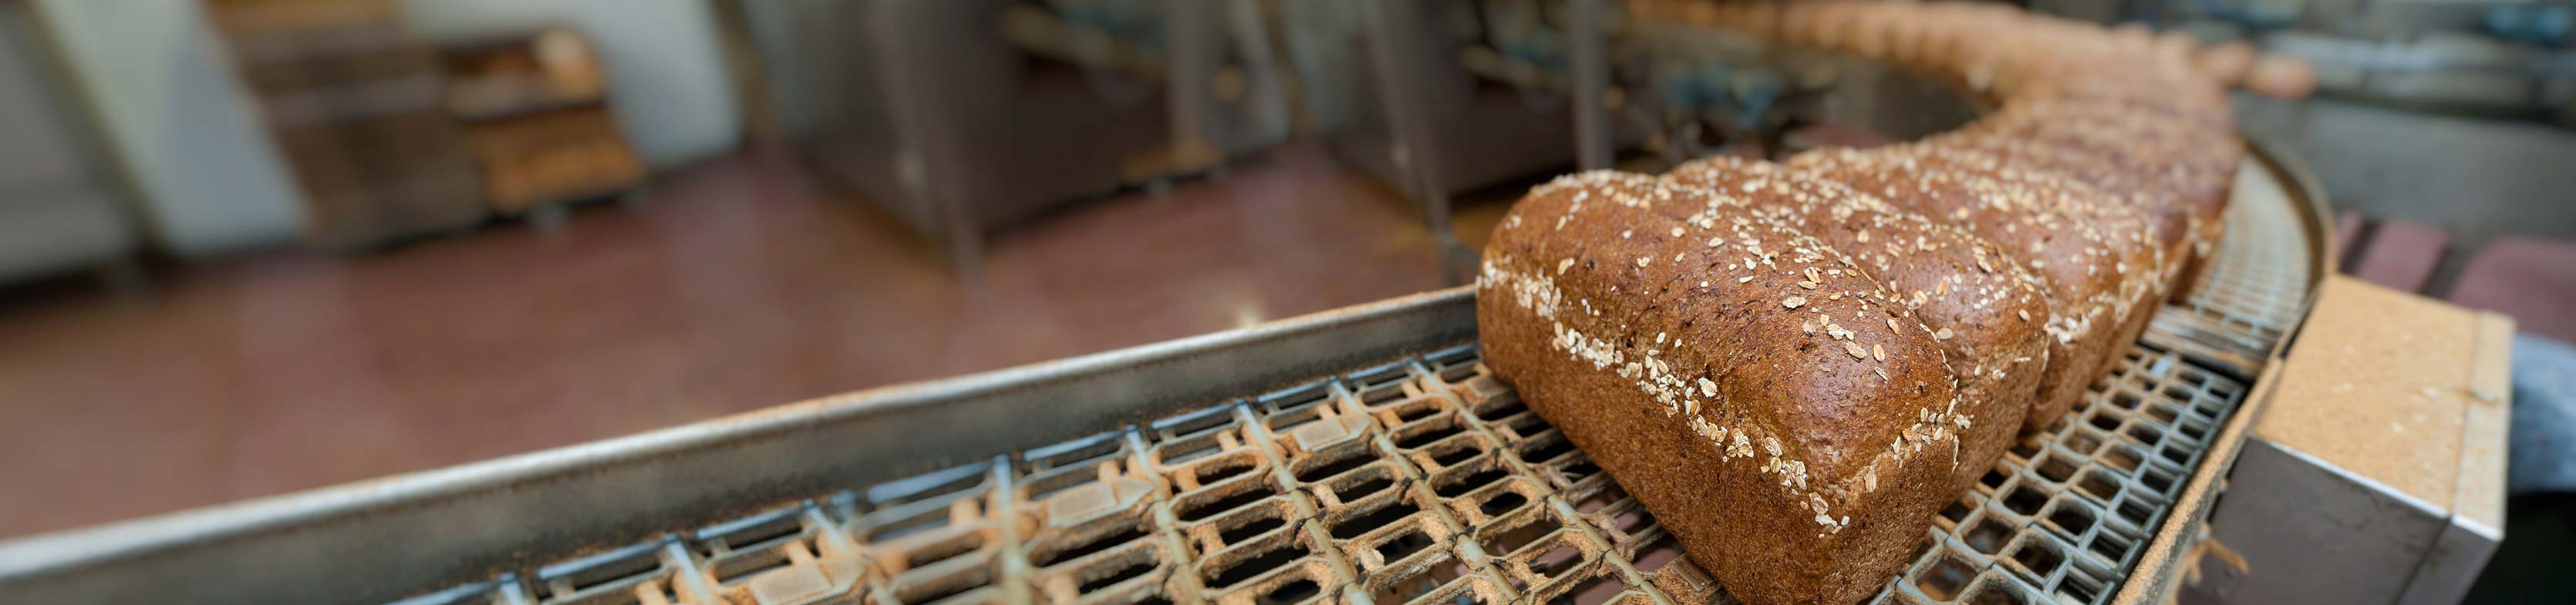 Drainage for Bakeries